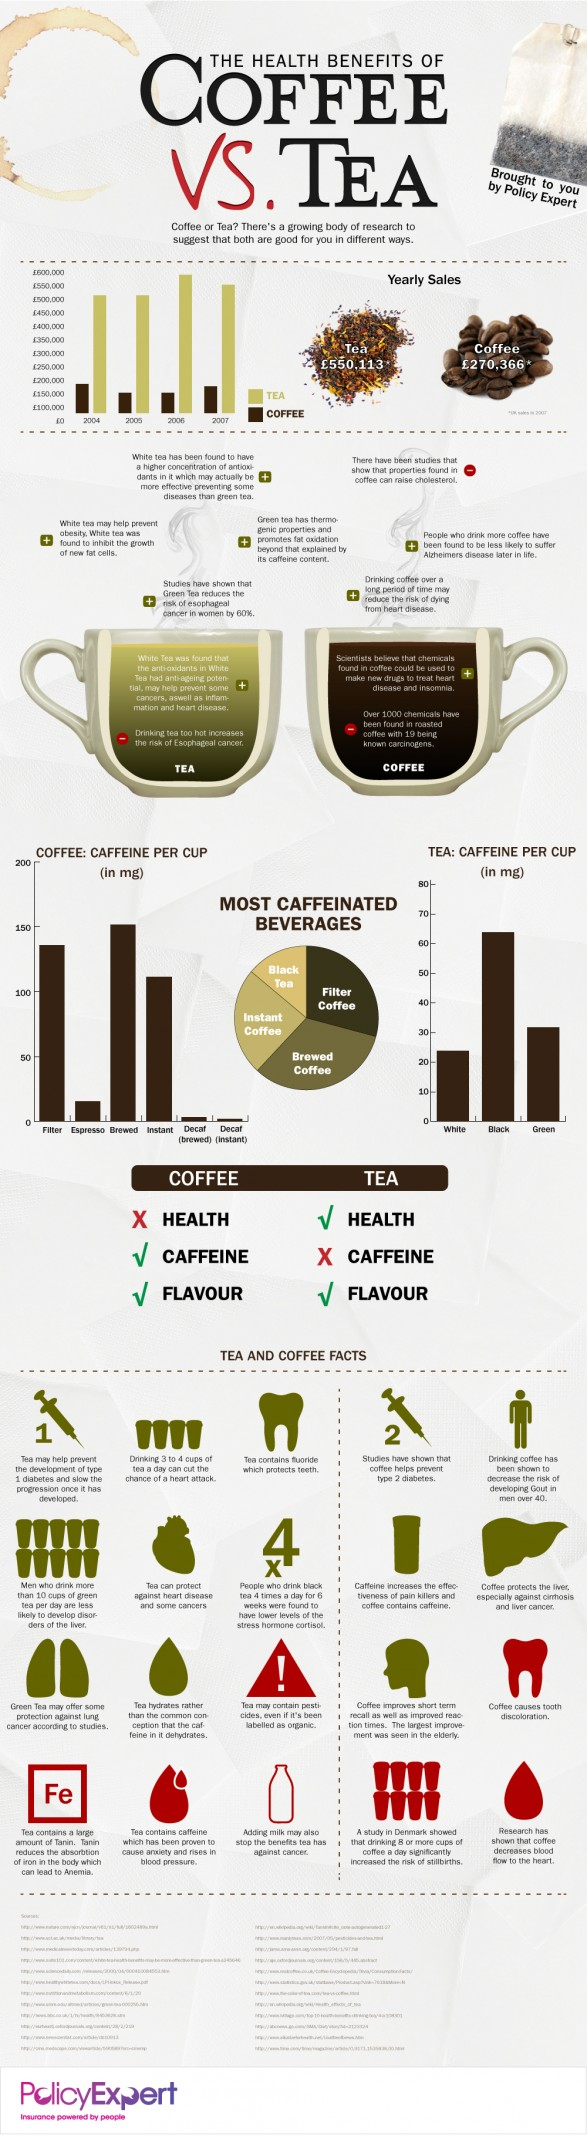 Health benefits of coffee vs. tea